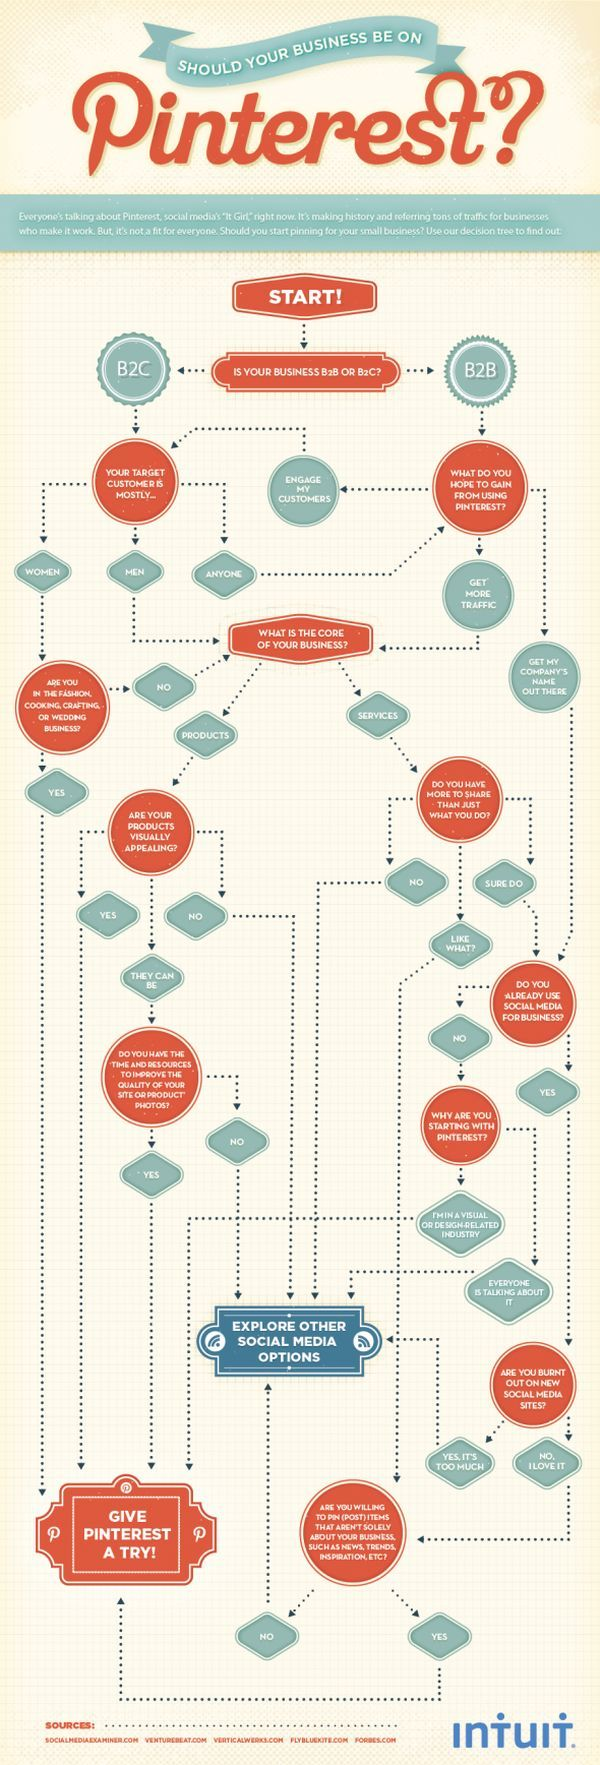 Is Pinterest right for your business? #infographic    www.twitter.com/sharifkhalladi for more stuff like this